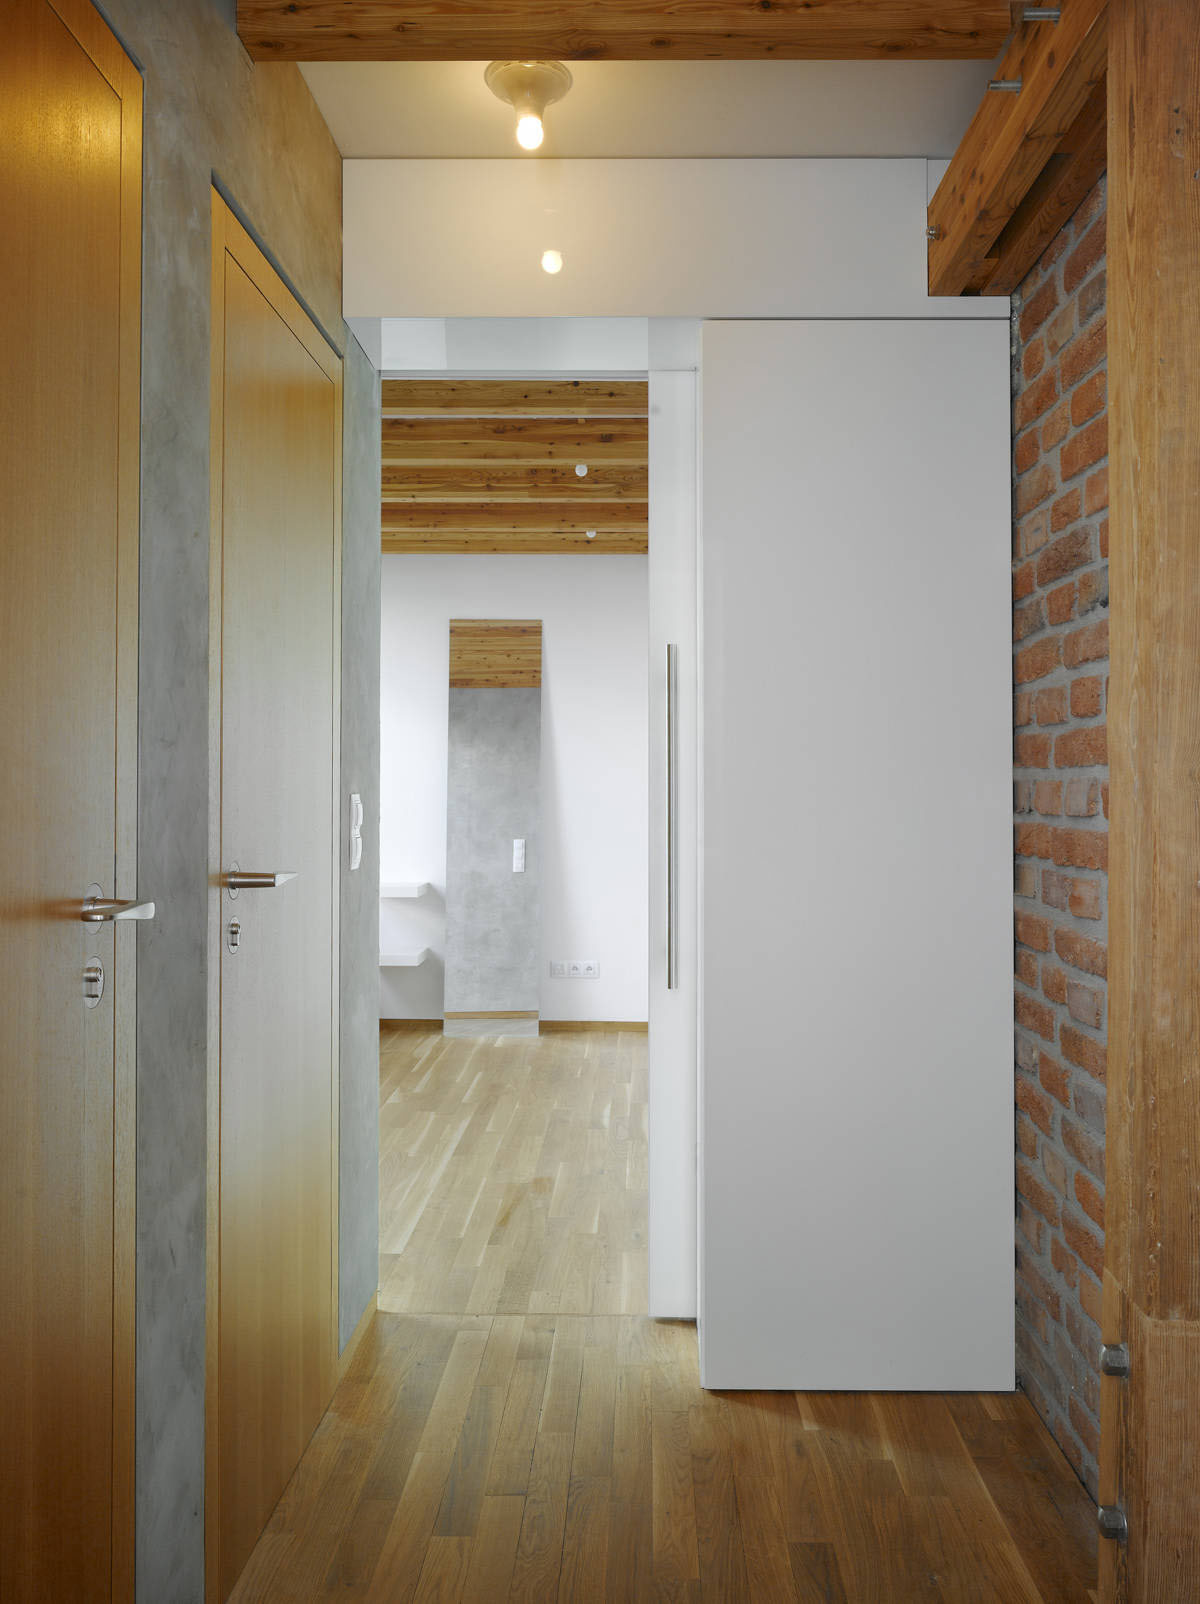 Group 9 business plan small attic loft apartments for Design apartment in prague 6